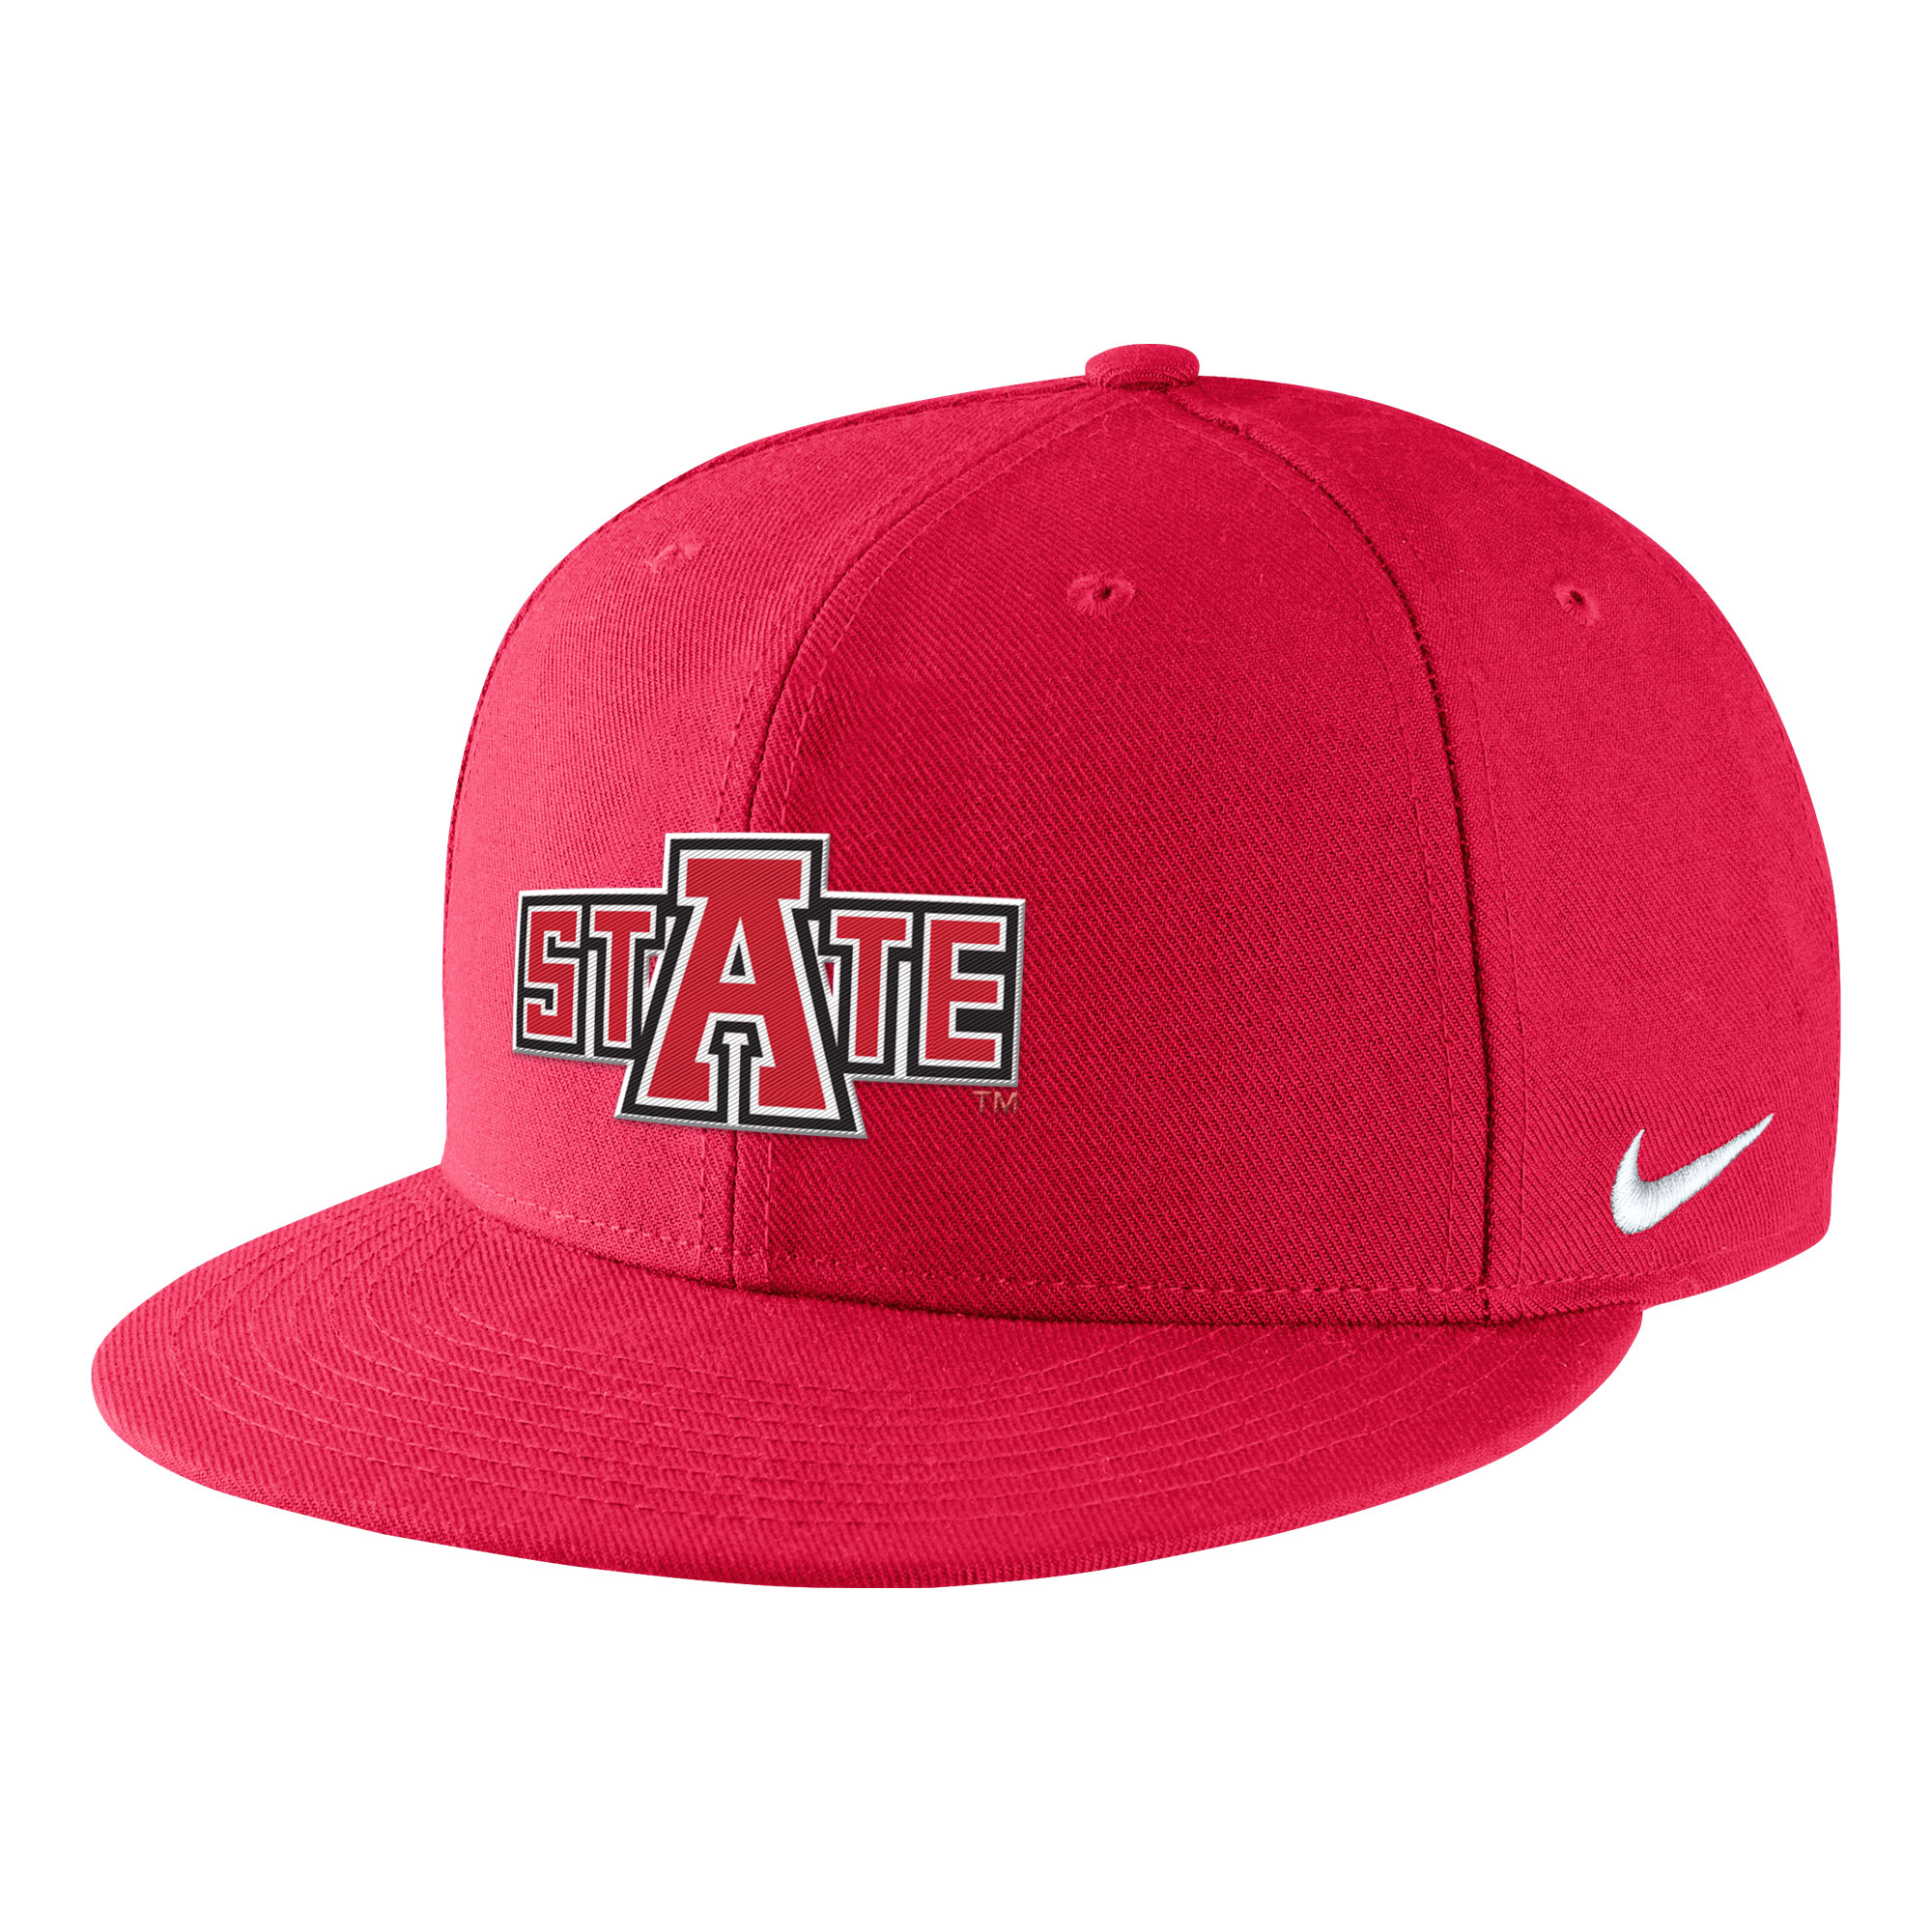 stAte Player's Cap